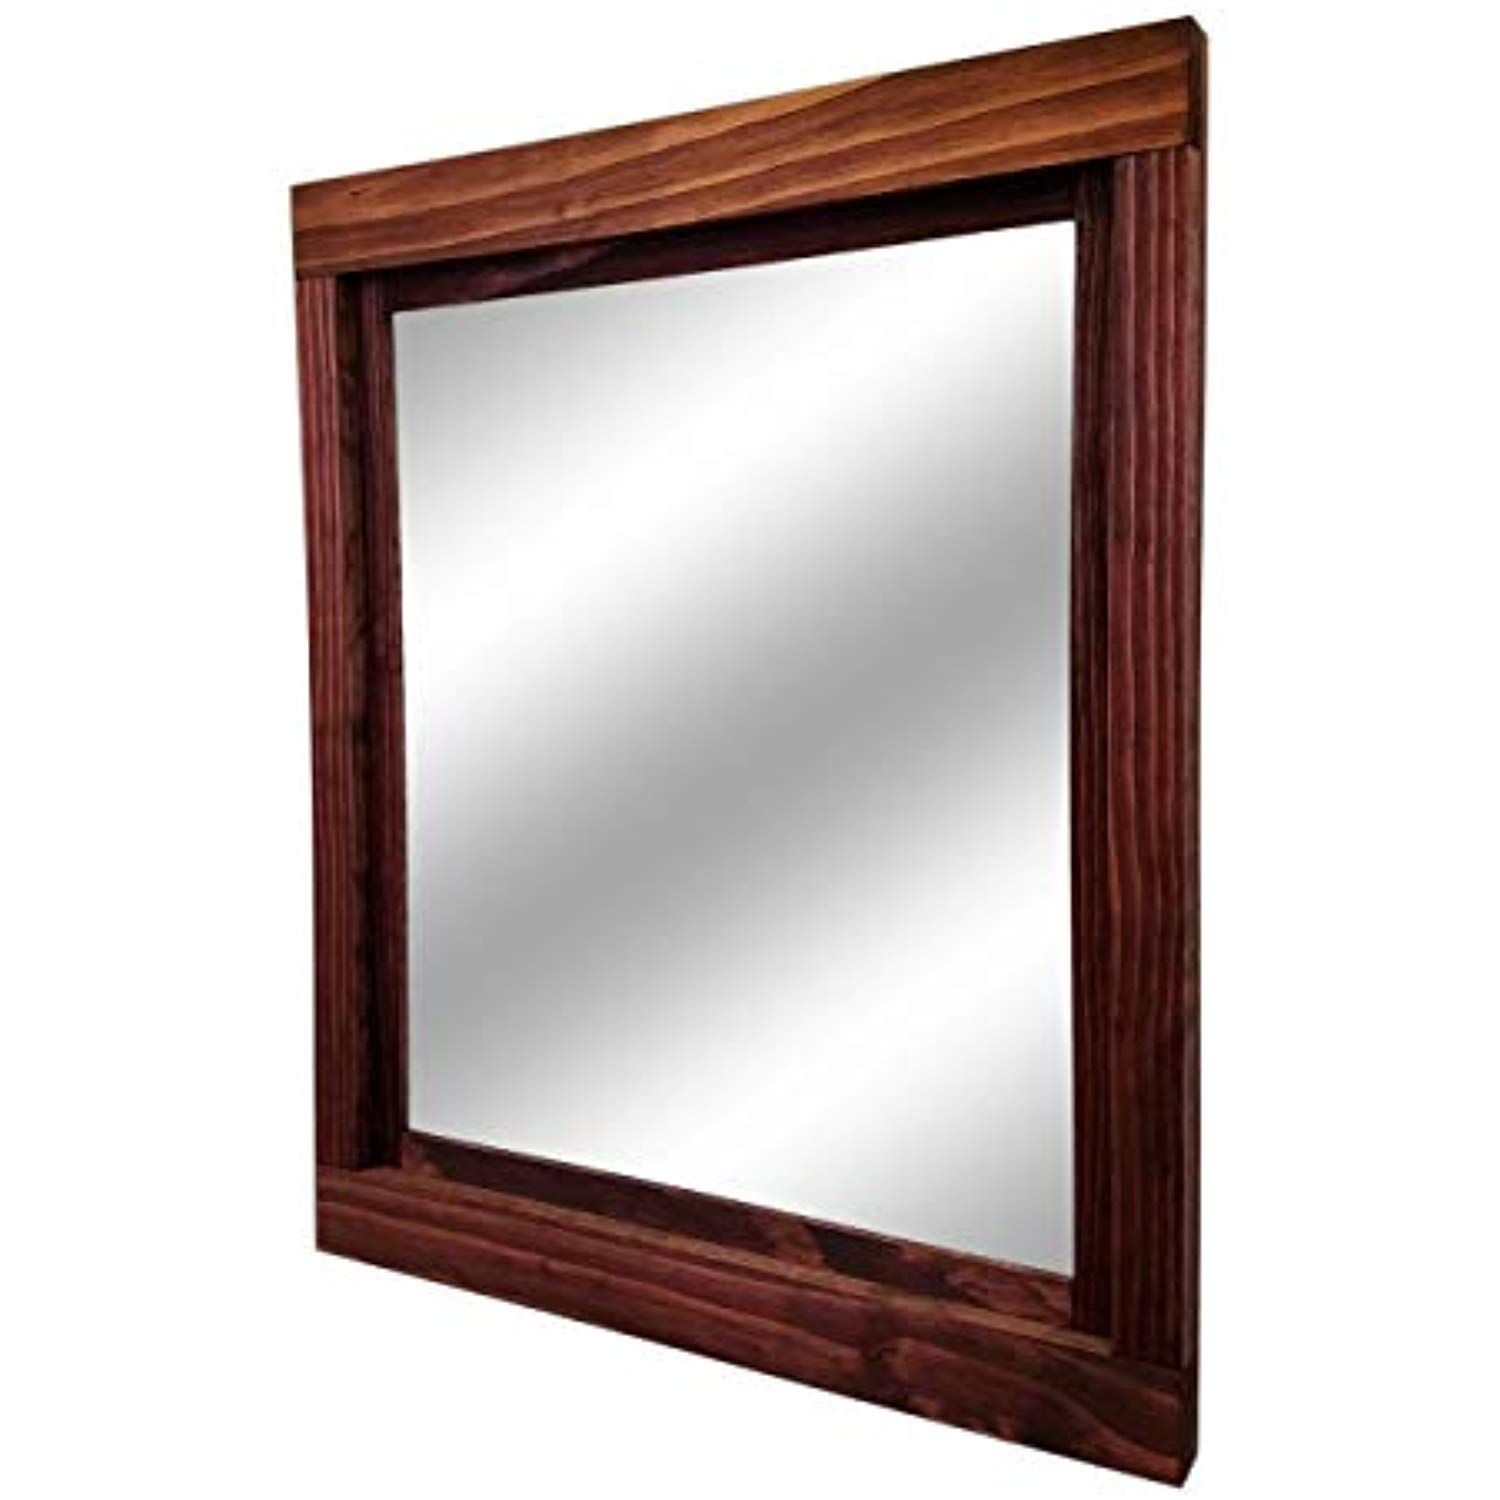 Farmhouse large framed mirror available in 5 sizes and 20